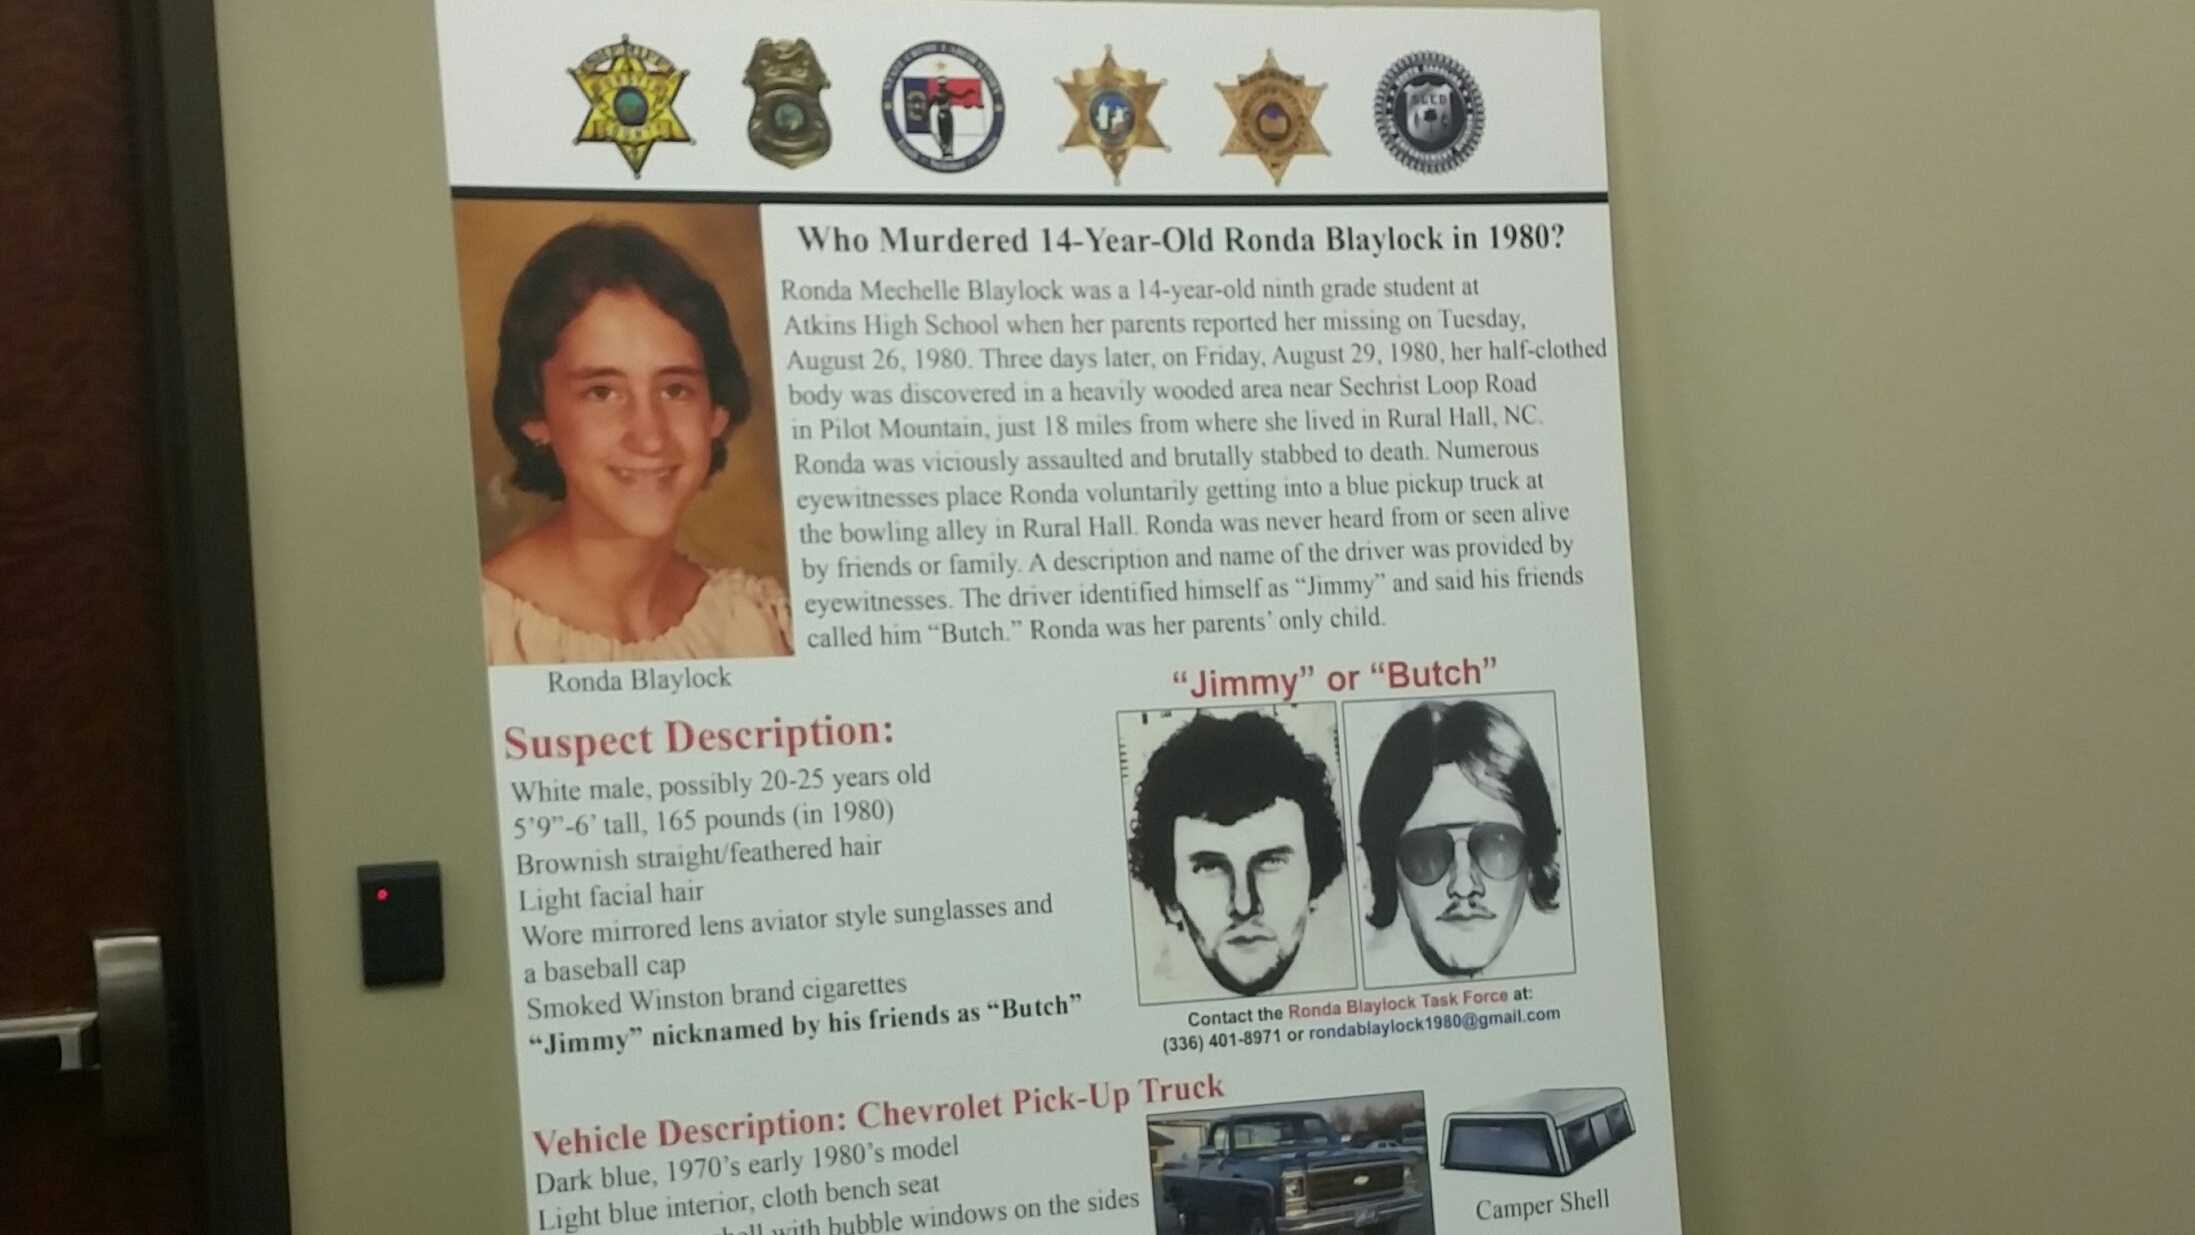 The body of Ronda Blaylock, 14, was discovered in 1980 – three days after she was reported missing.